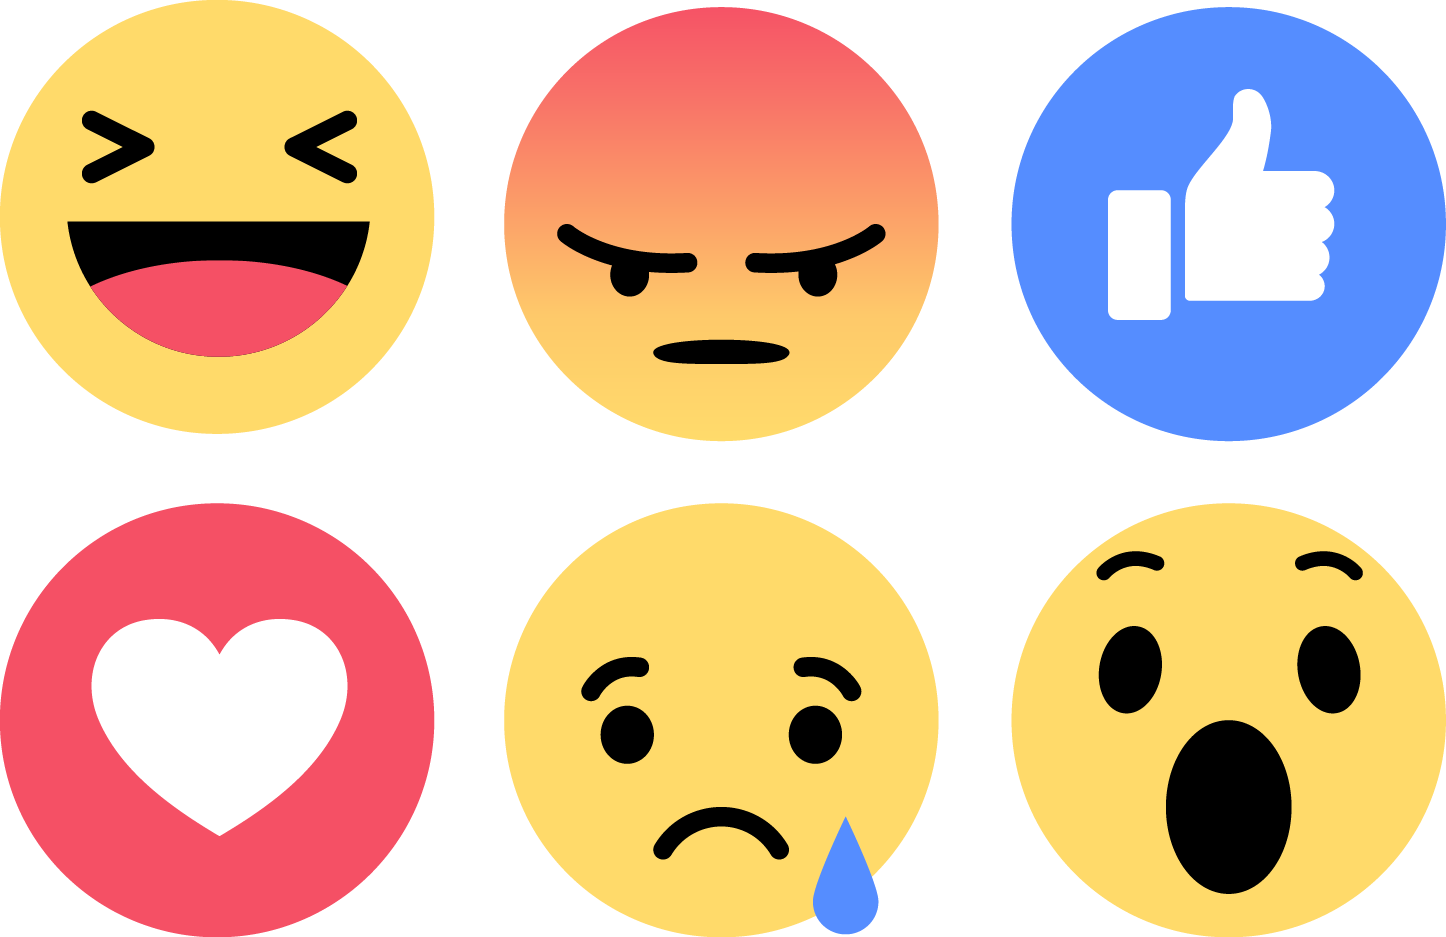 download emoji facebook vector like love angry sad wow smail